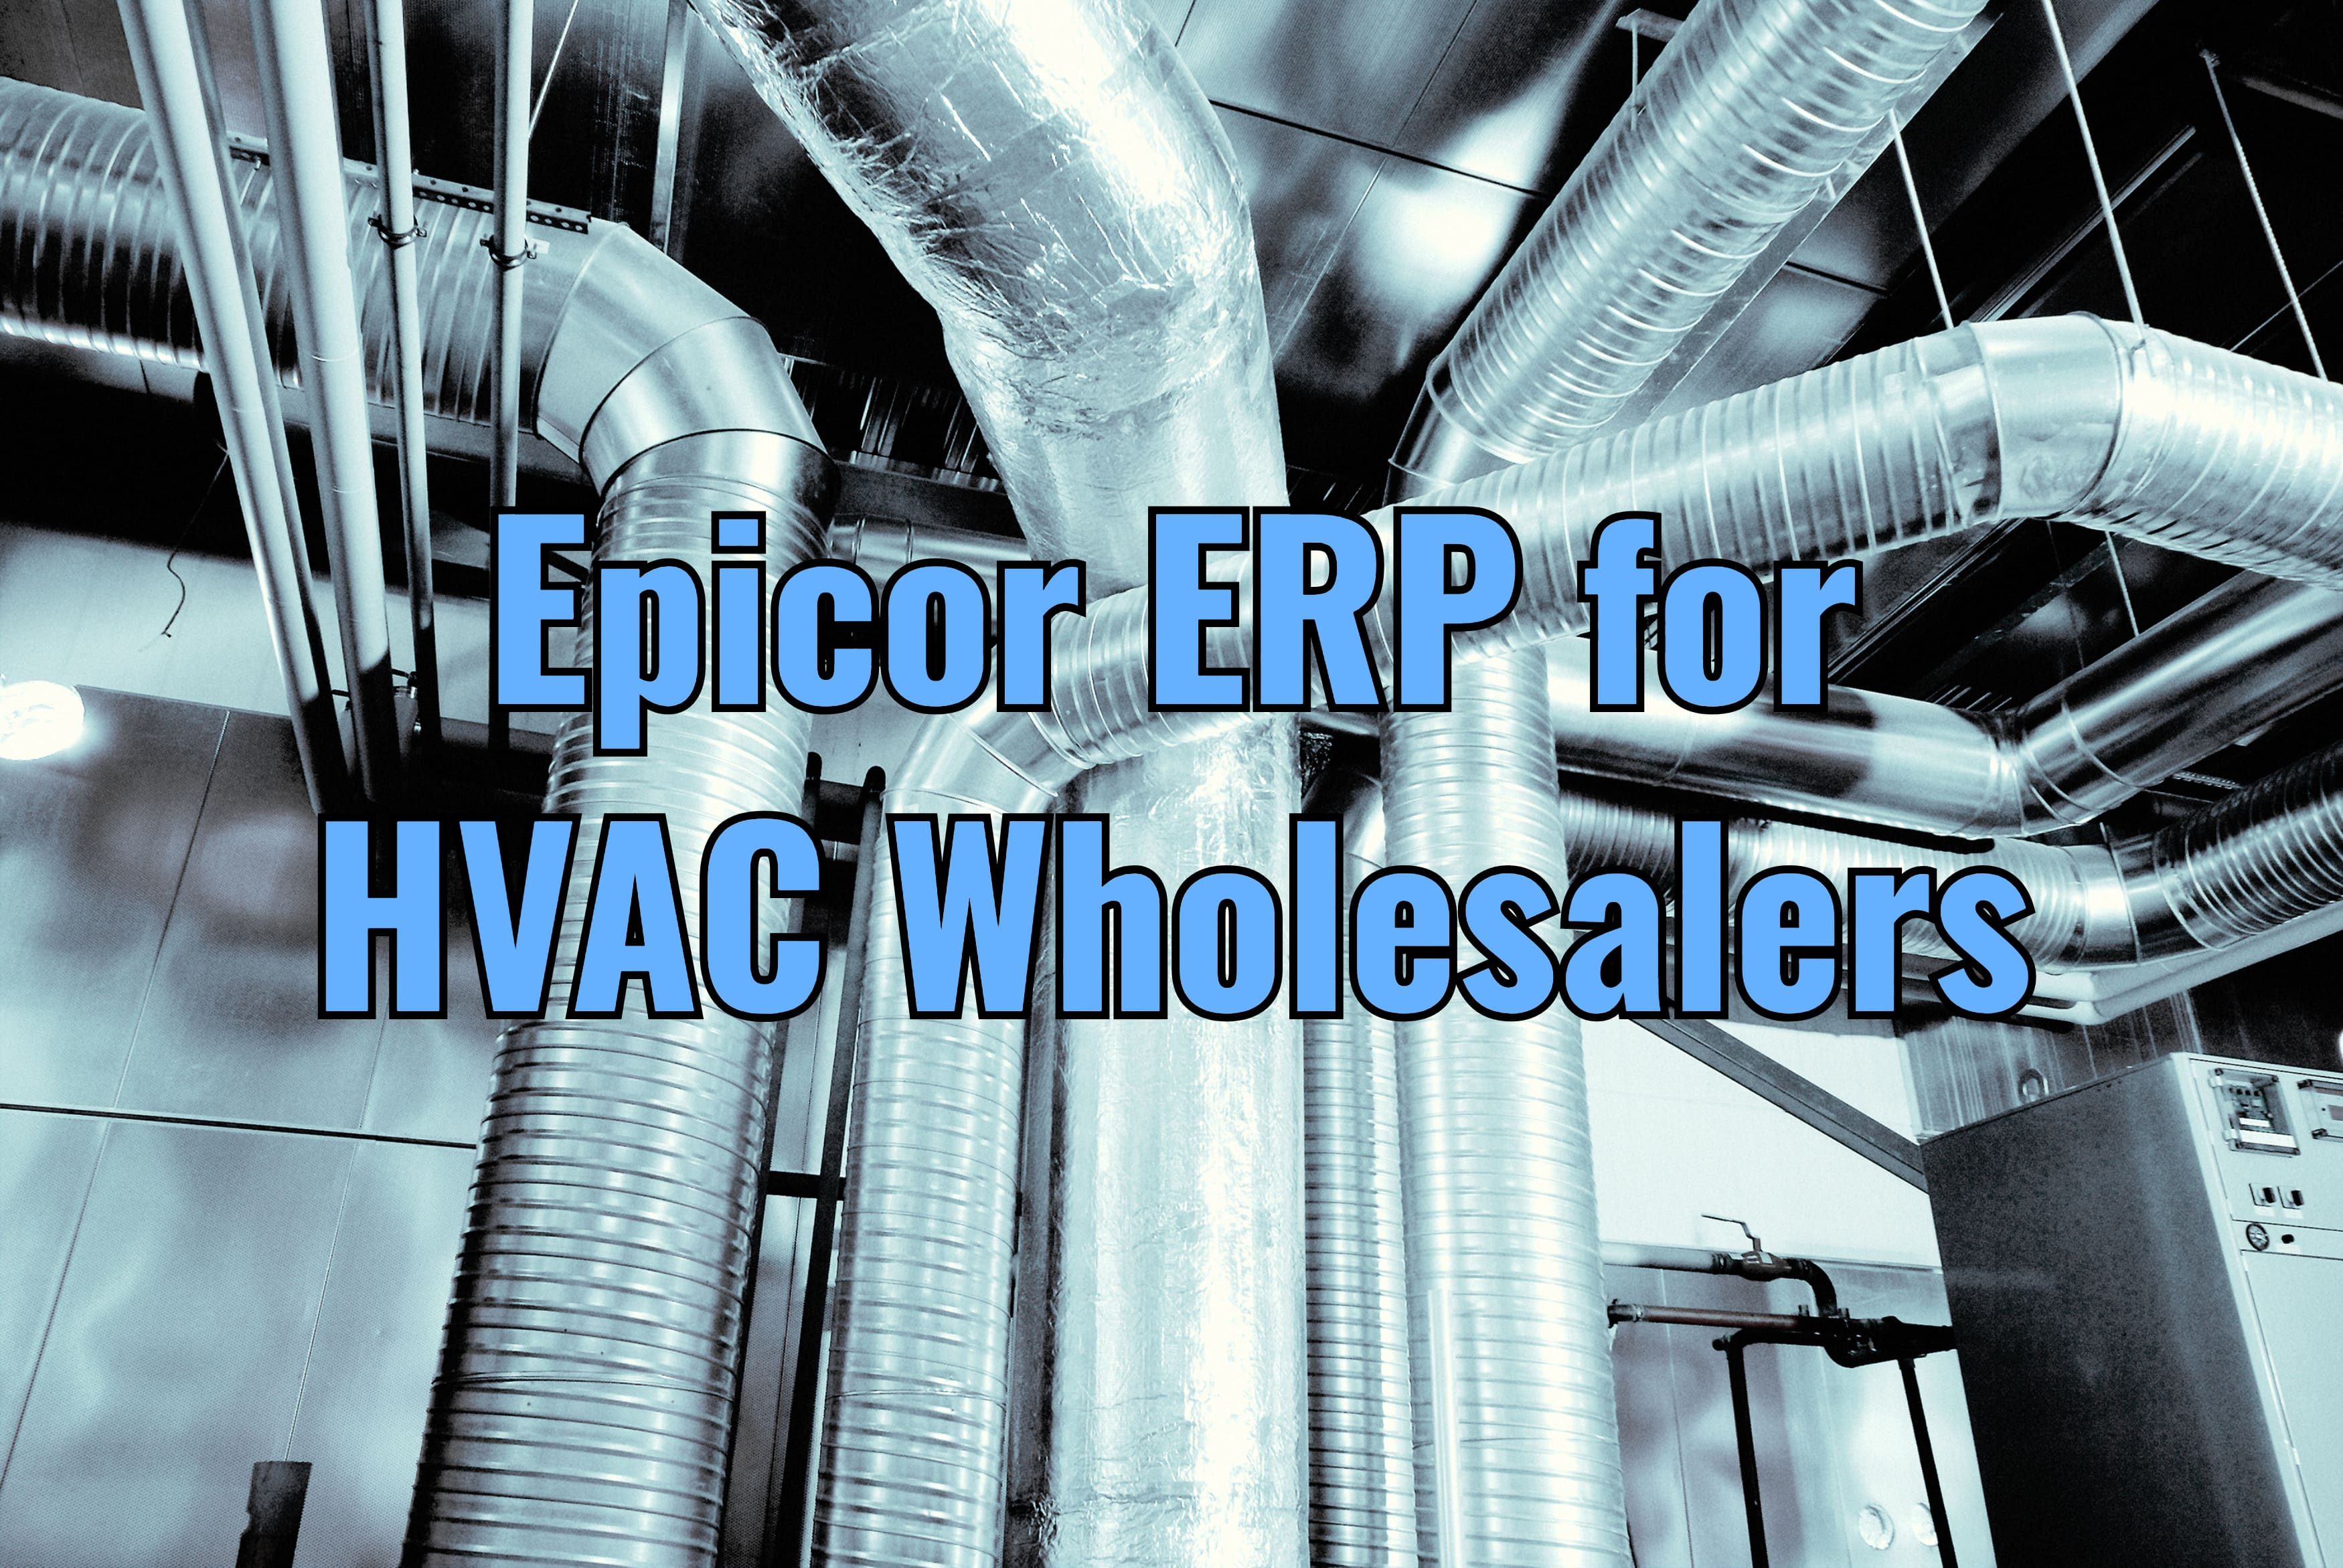 HVAC Wholesalers Heat Up Profits with Epicor